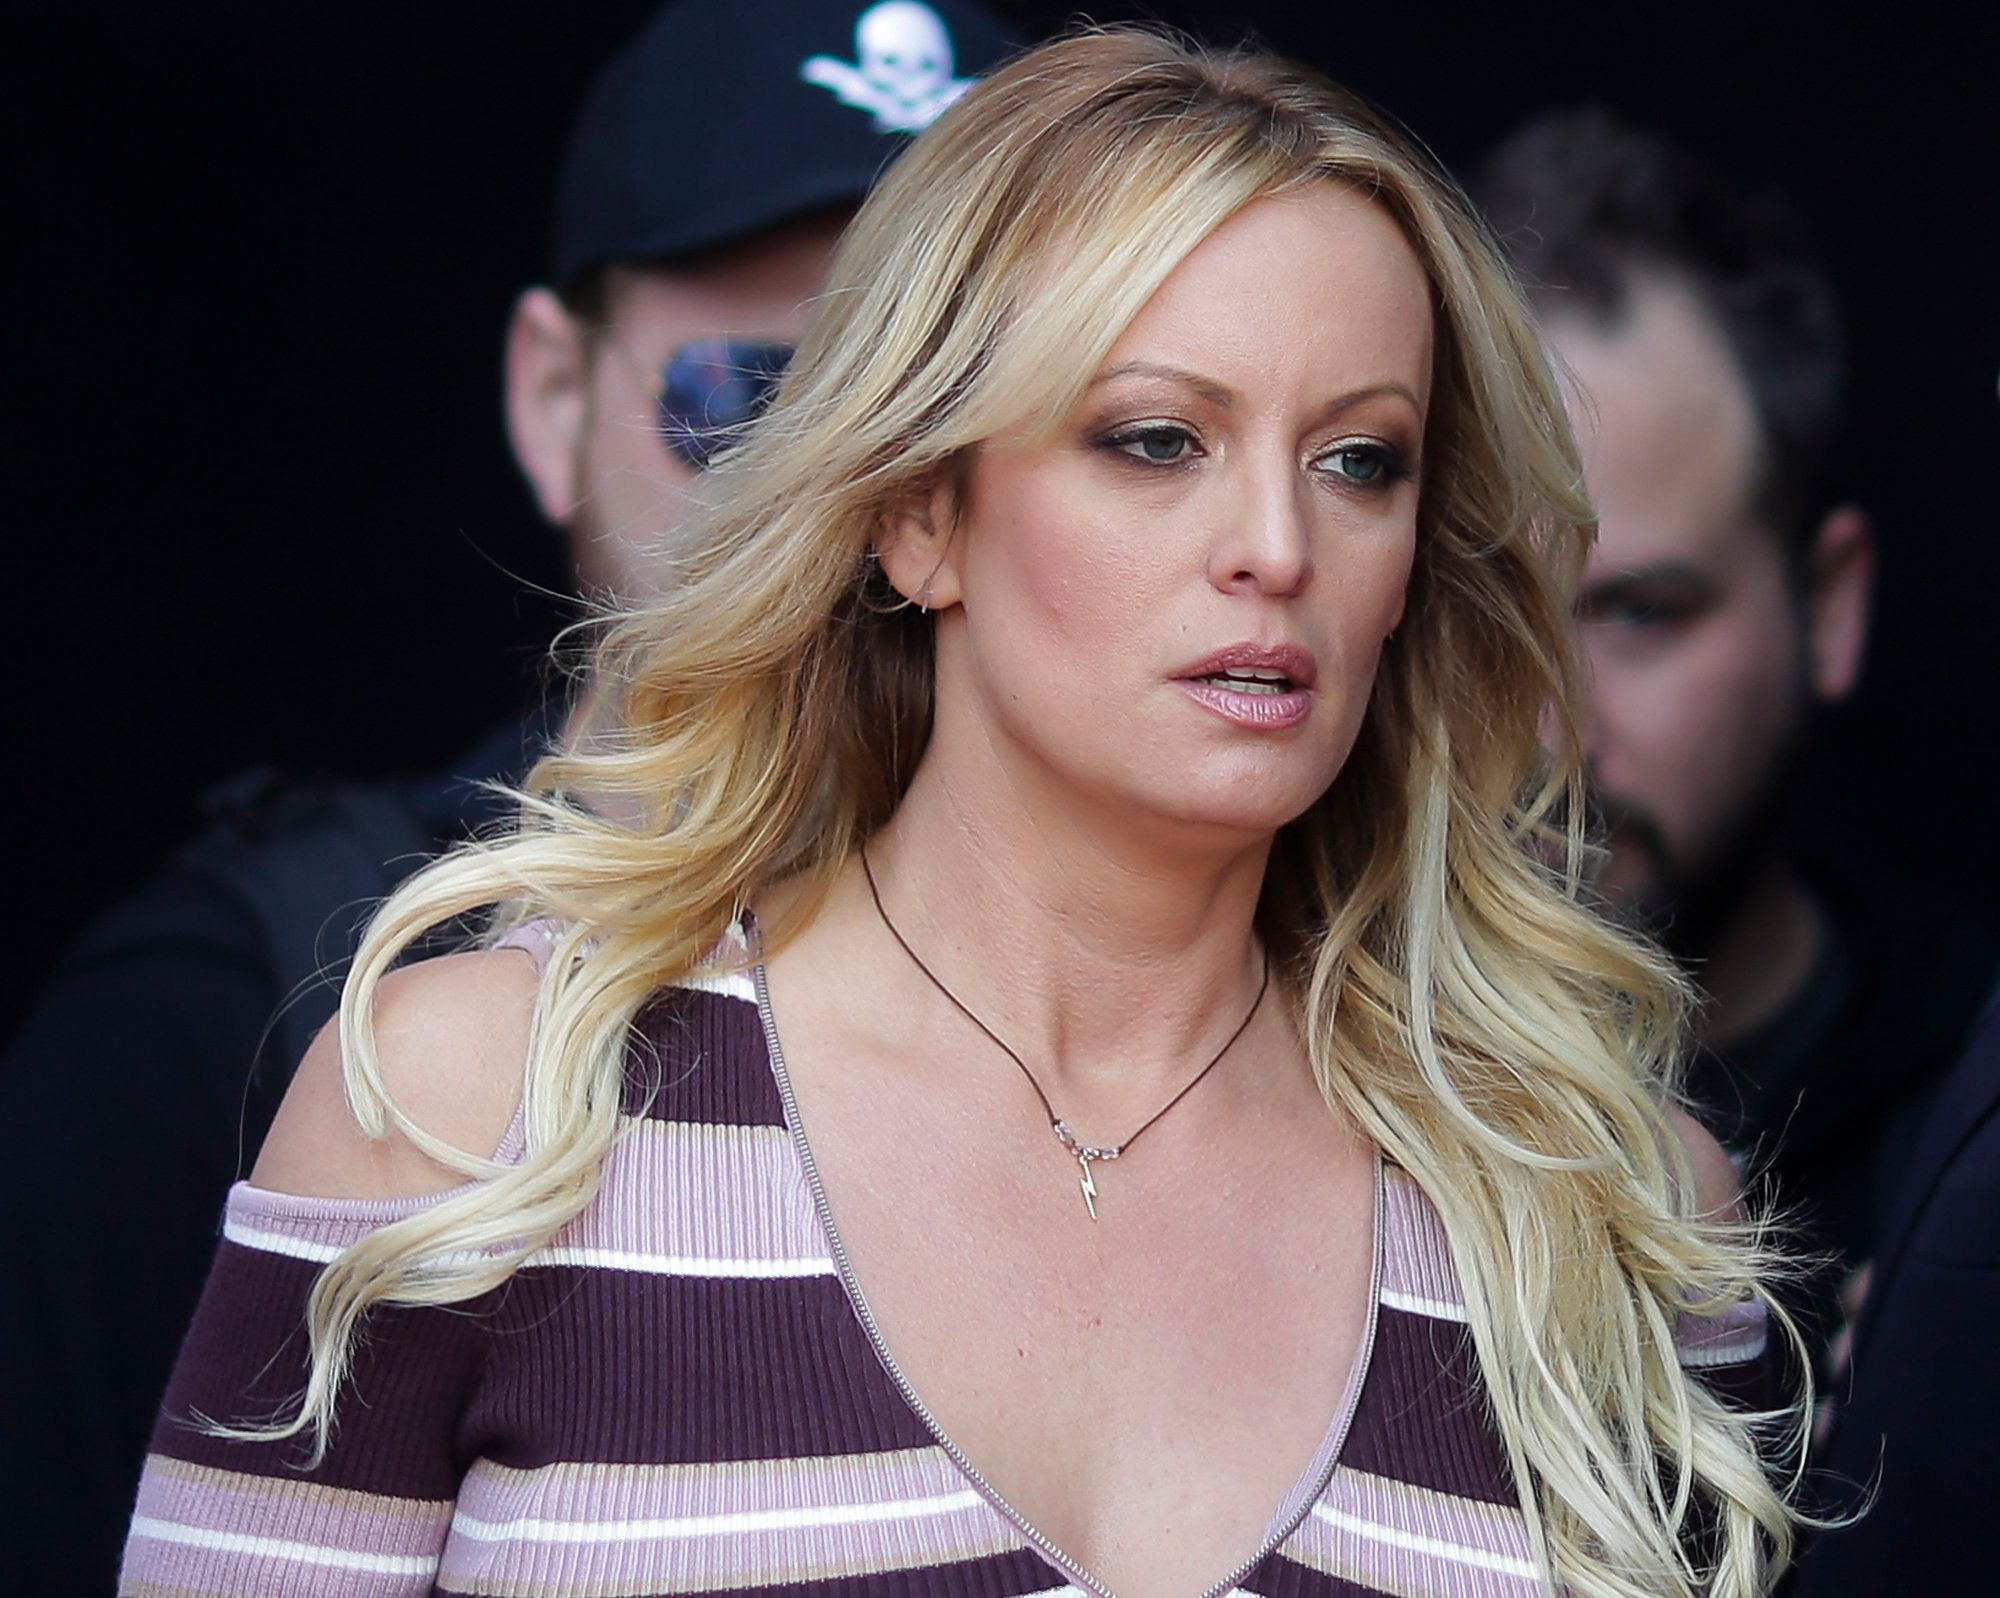 """FILE - In this Thursday, Oct. 11, 2018, file photo, adult film actress Stormy Daniels arrives for the opening of the adult entertainment fair """"Venus,"""" in Berlin. On Monday, Oct. 15, 2018, a federal judge dismissed Daniels' defamation lawsuit against President Donald Trump. (AP Photo/Markus Schreiber, File)"""